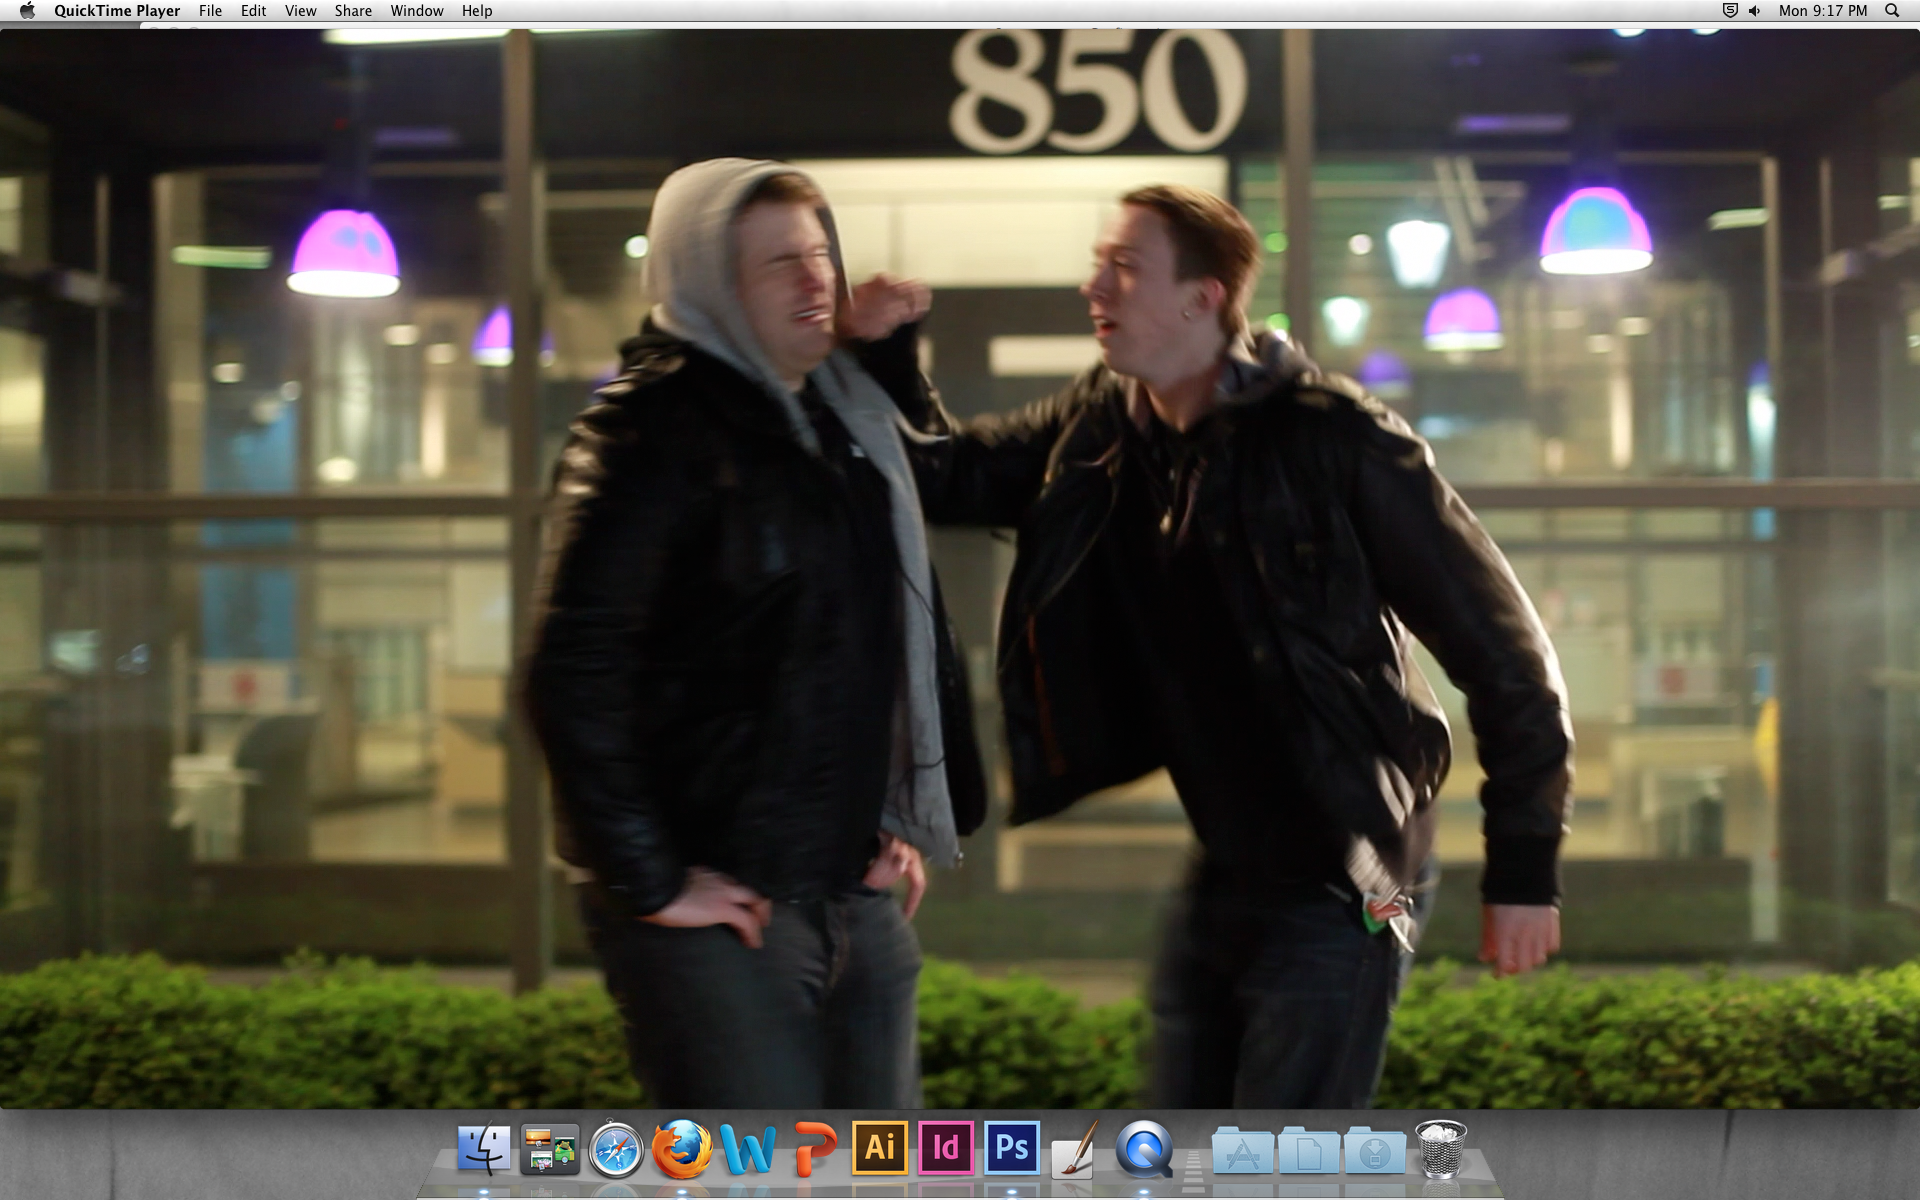 Here's a still from the footage from the night of me getting punched in the face. Enjoy.